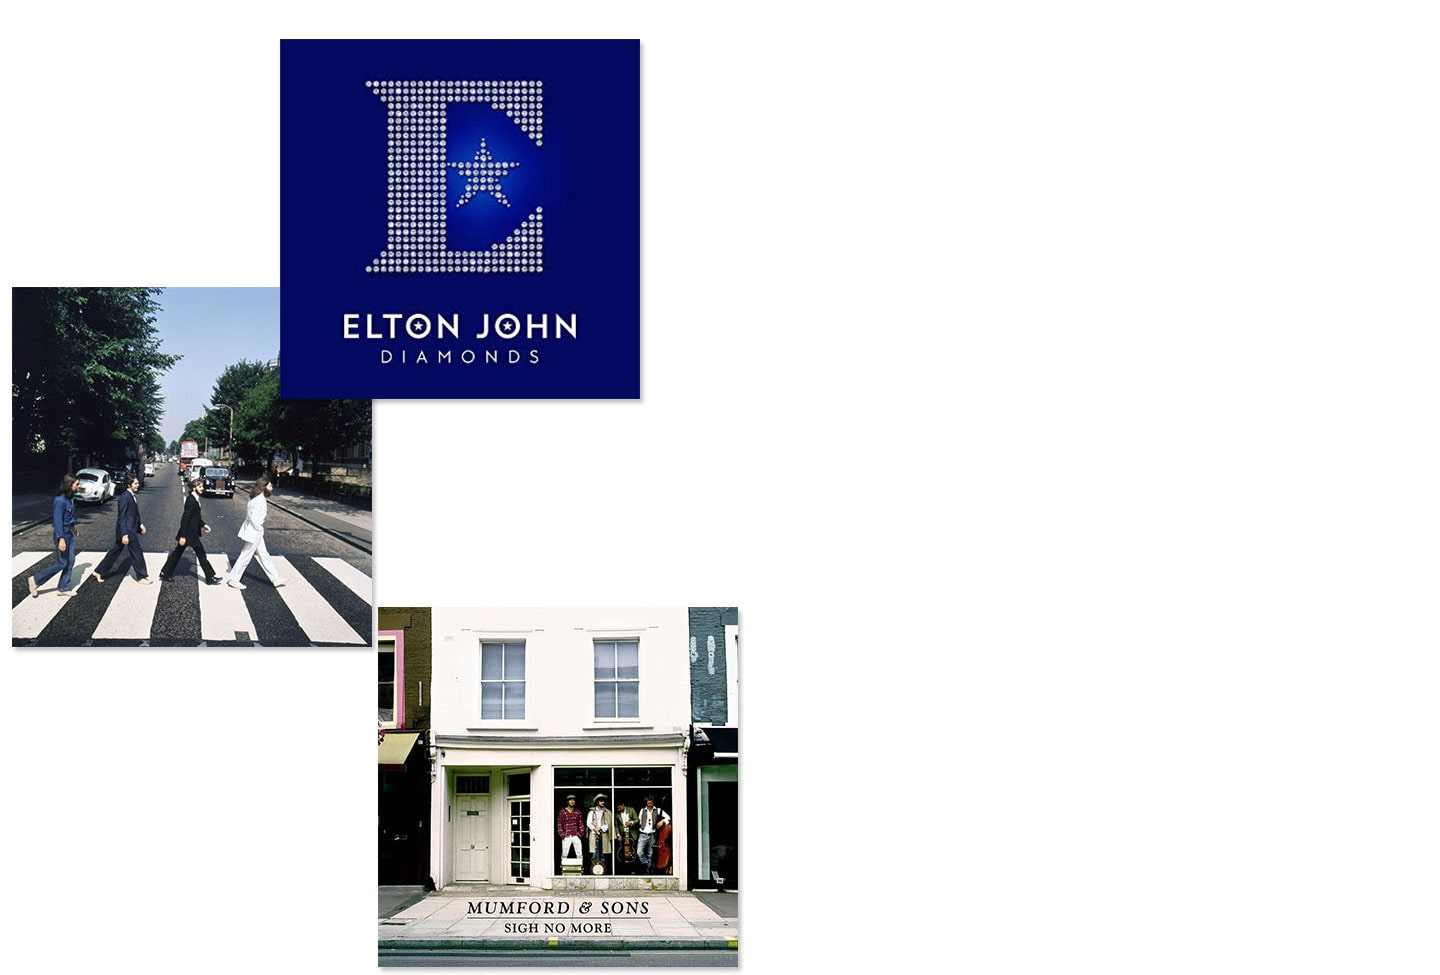 Album covers of Elton John Diamonds, The Beatles Abbey Road and Mumford & Sons Sign No More